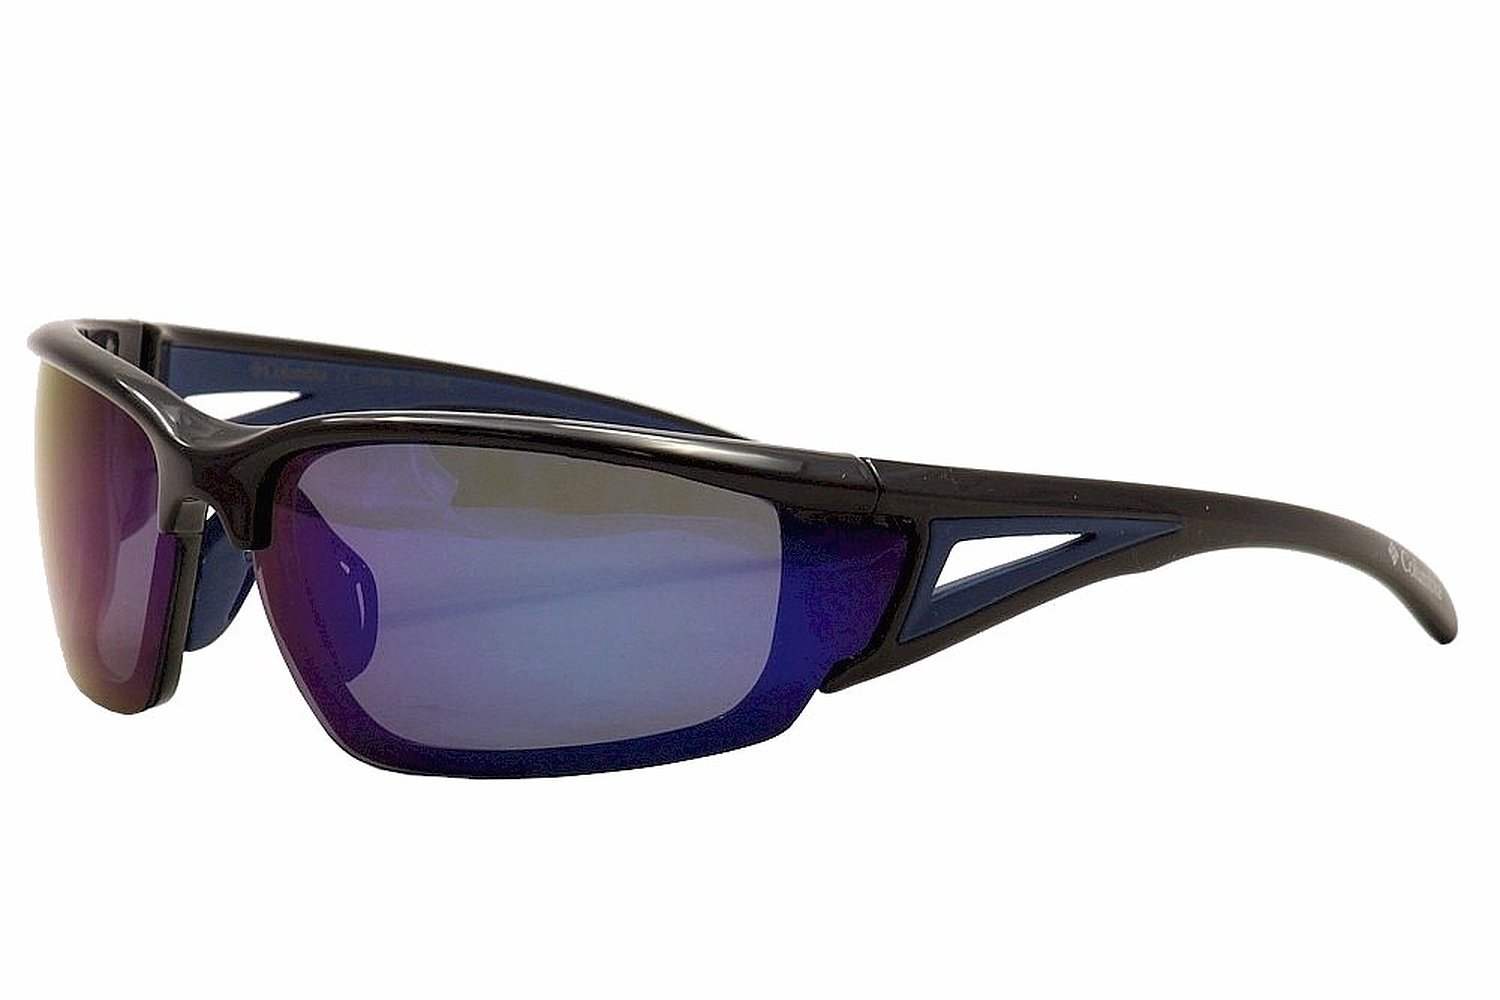 Columbia Unisex 402 Shiny Black and Blue Sunglasses